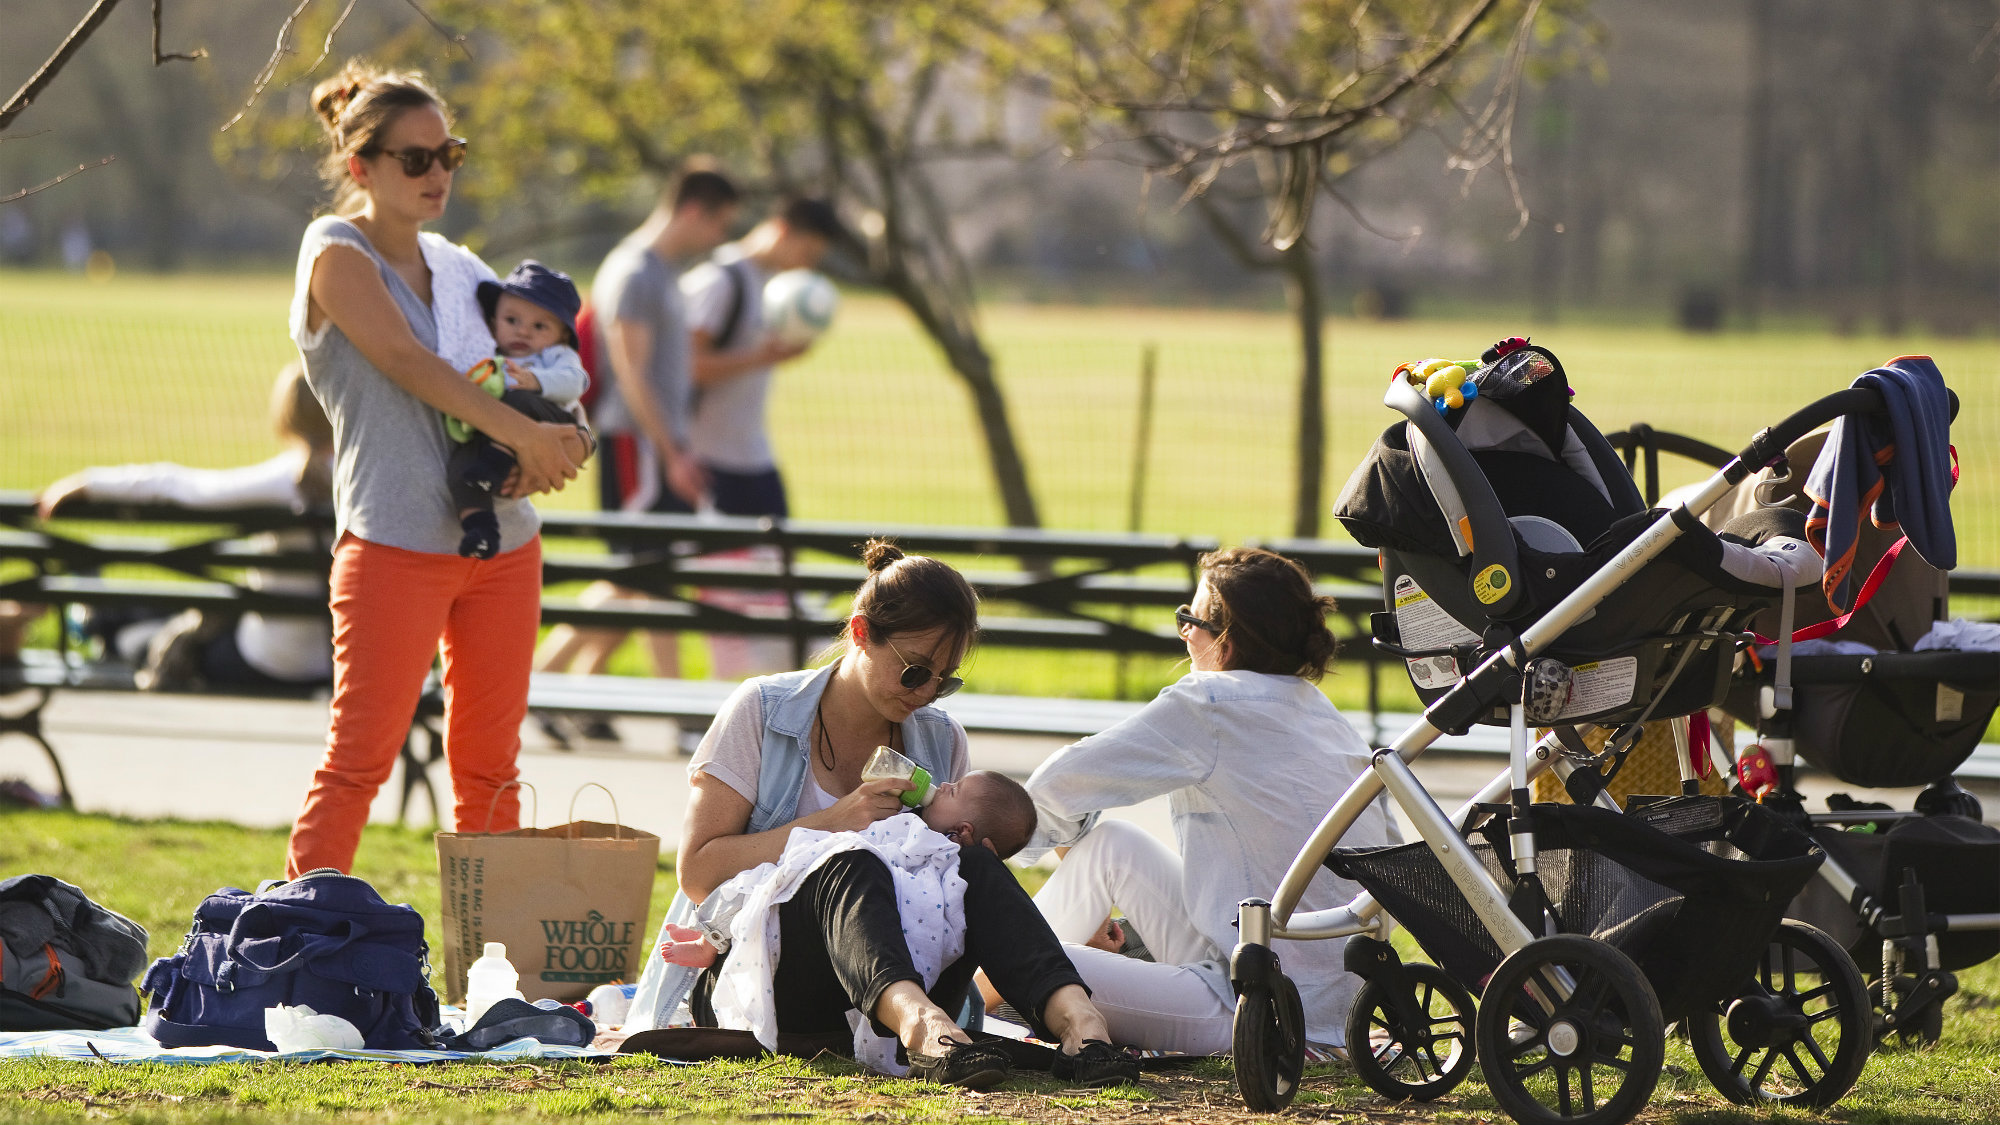 Mothers relax on the grass with their babies at Central Park during a warm day in New York